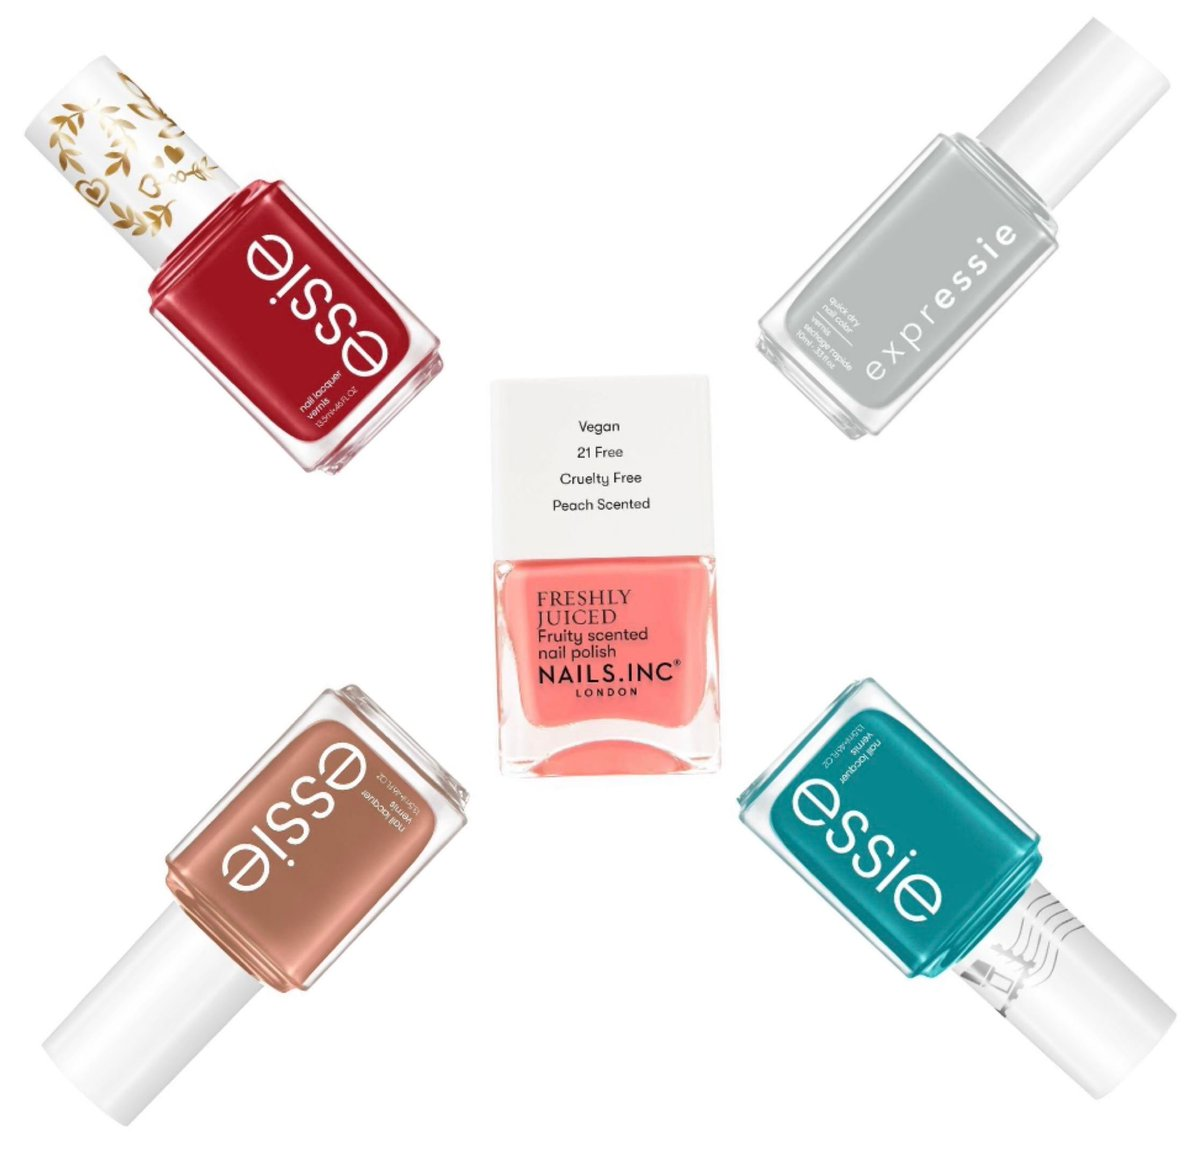 Target: new Essie nail polish collections available (online and in-store) and now carrying Nails Inc  #beauty #beautydeals #muaonthecheap